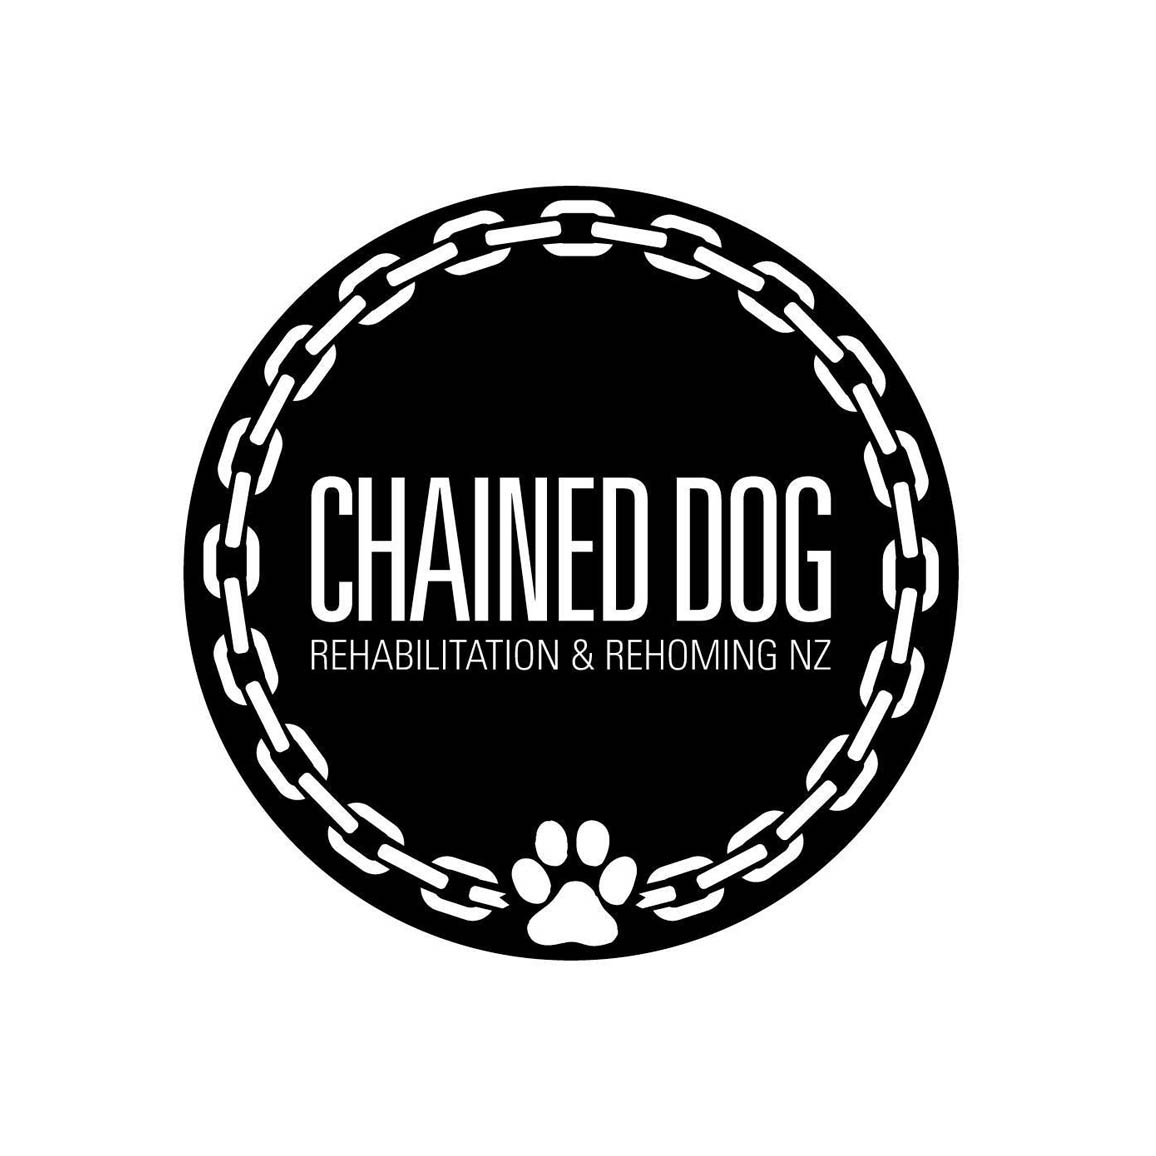 CHAINED DOG REHABILITRATION AND REHOMING NZ